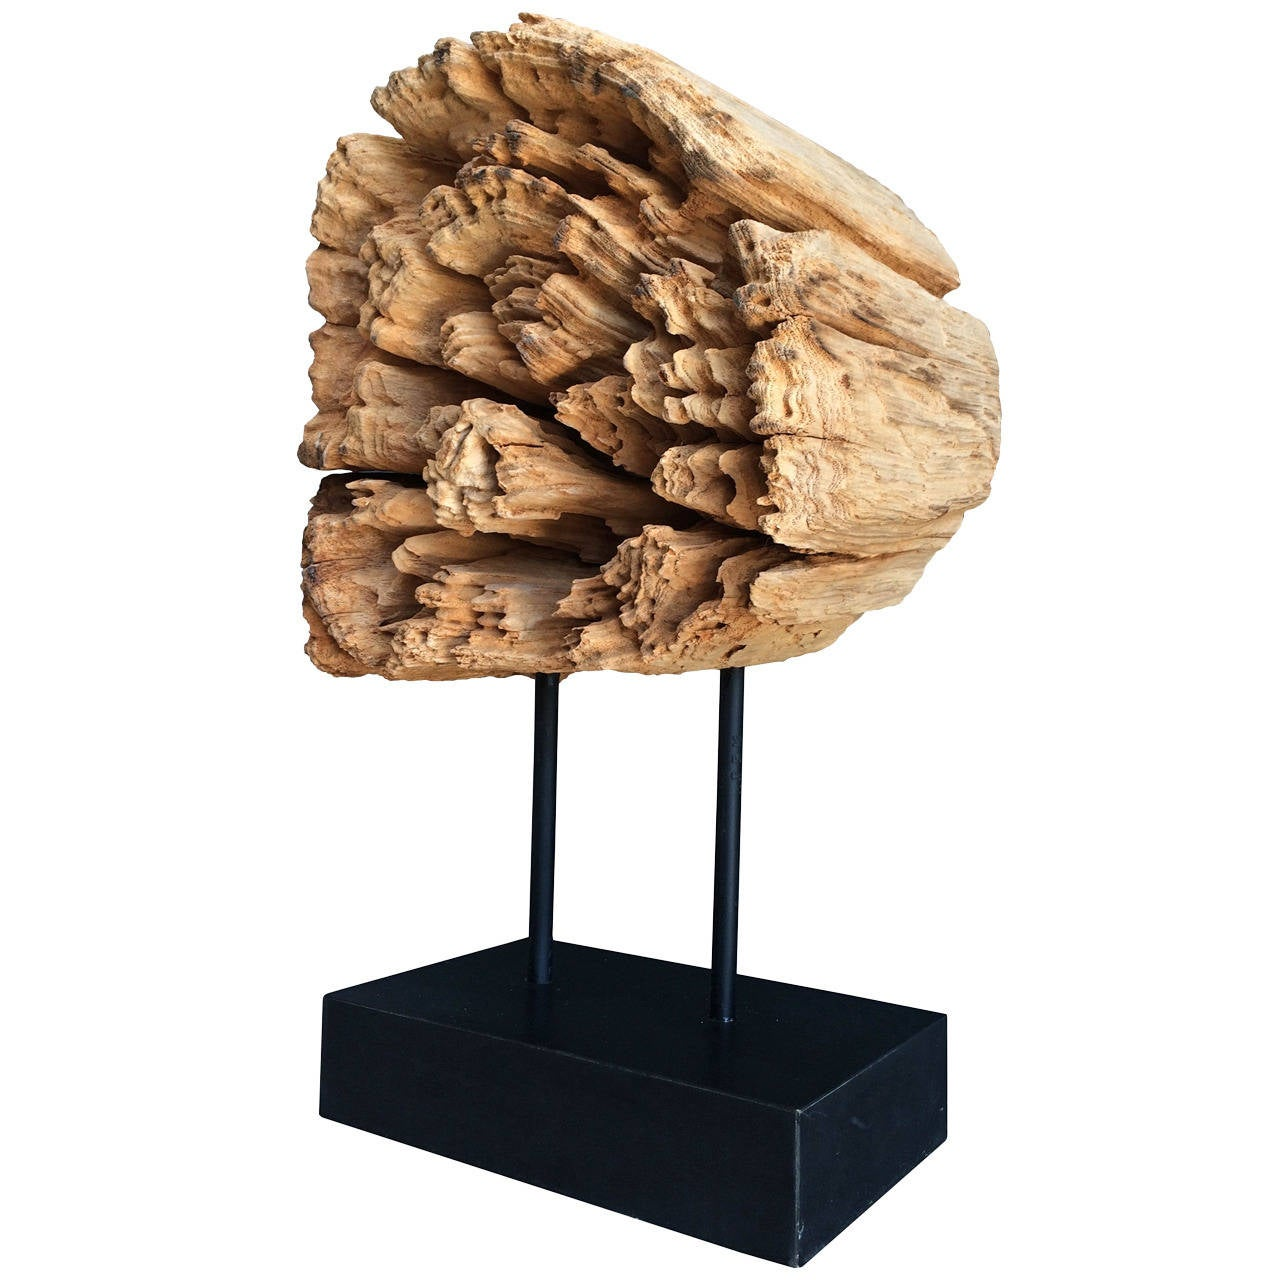 Wonderful image of Stunning Wood Sculpture on a Metal Stand For Sale at 1stdibs with #A06B2B color and 1280x1280 pixels